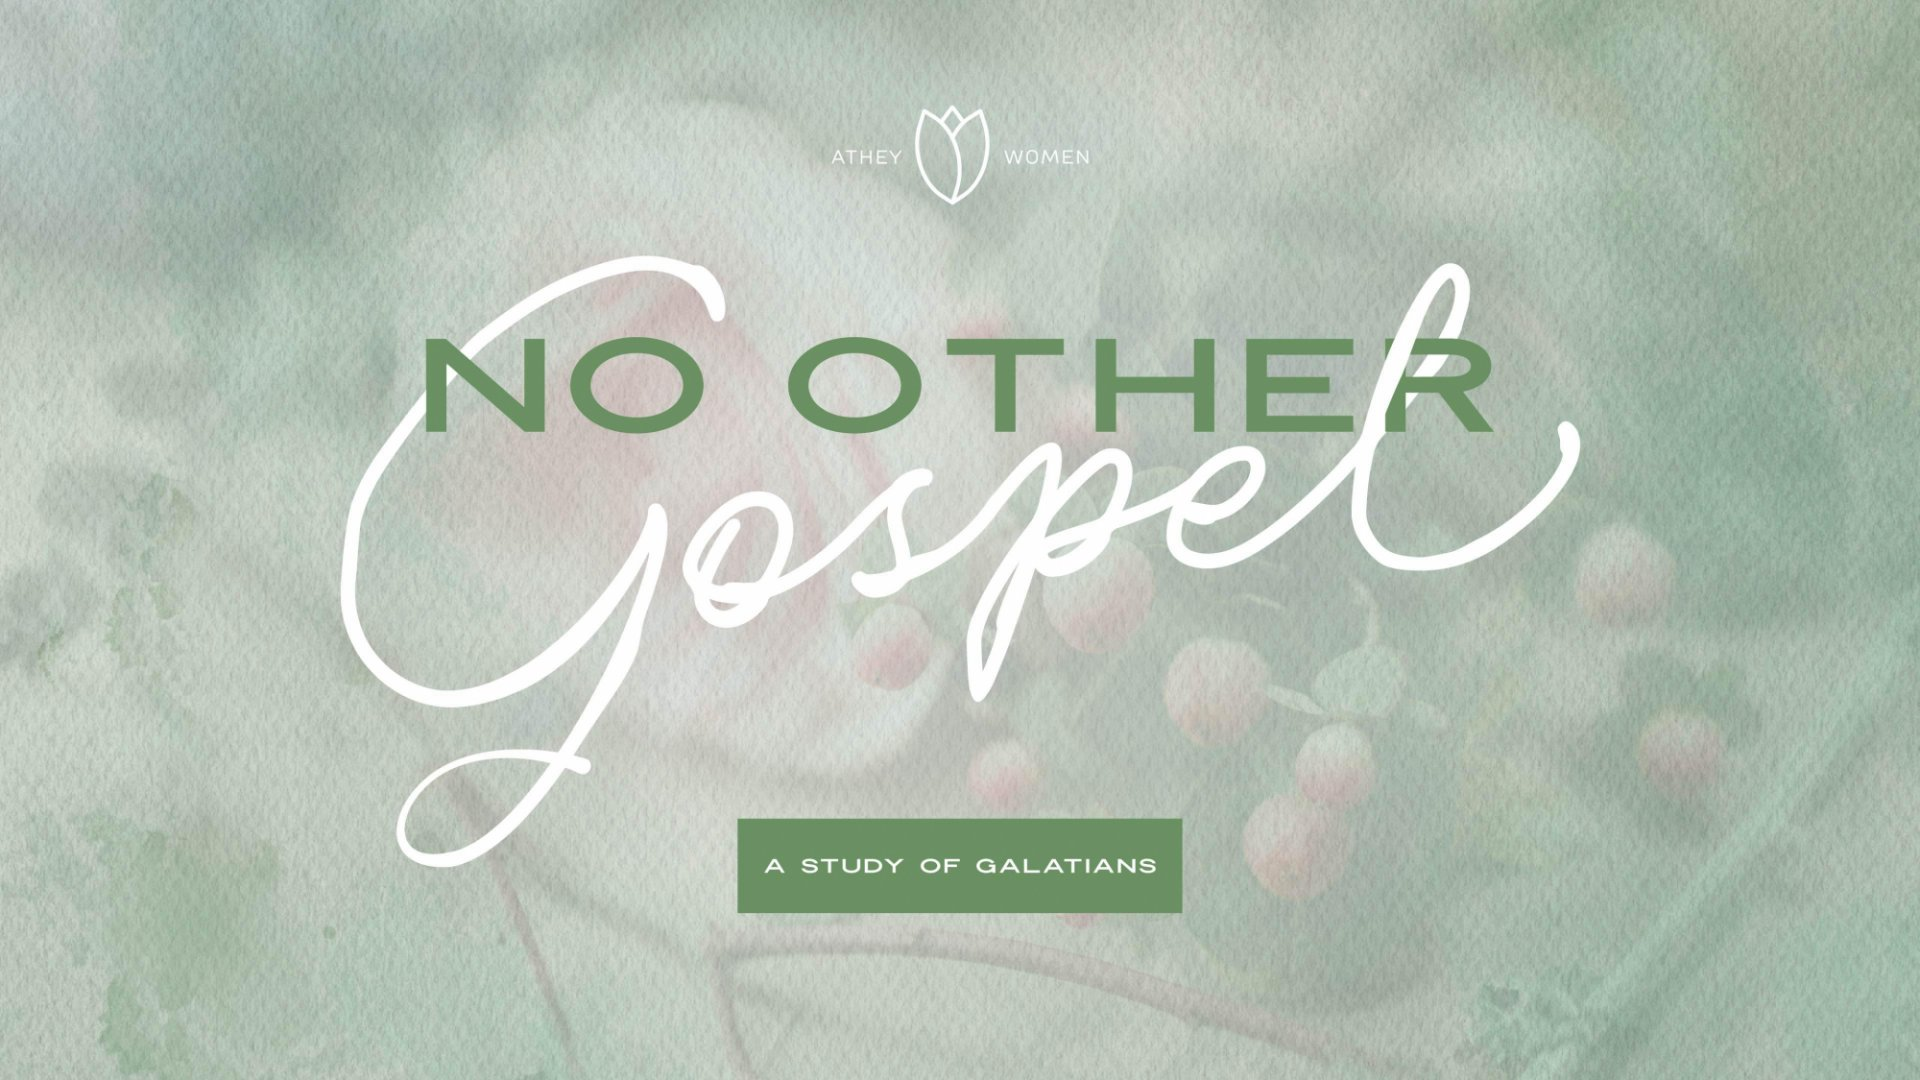 Poster for No Other Gospel: Galatians Bible Study